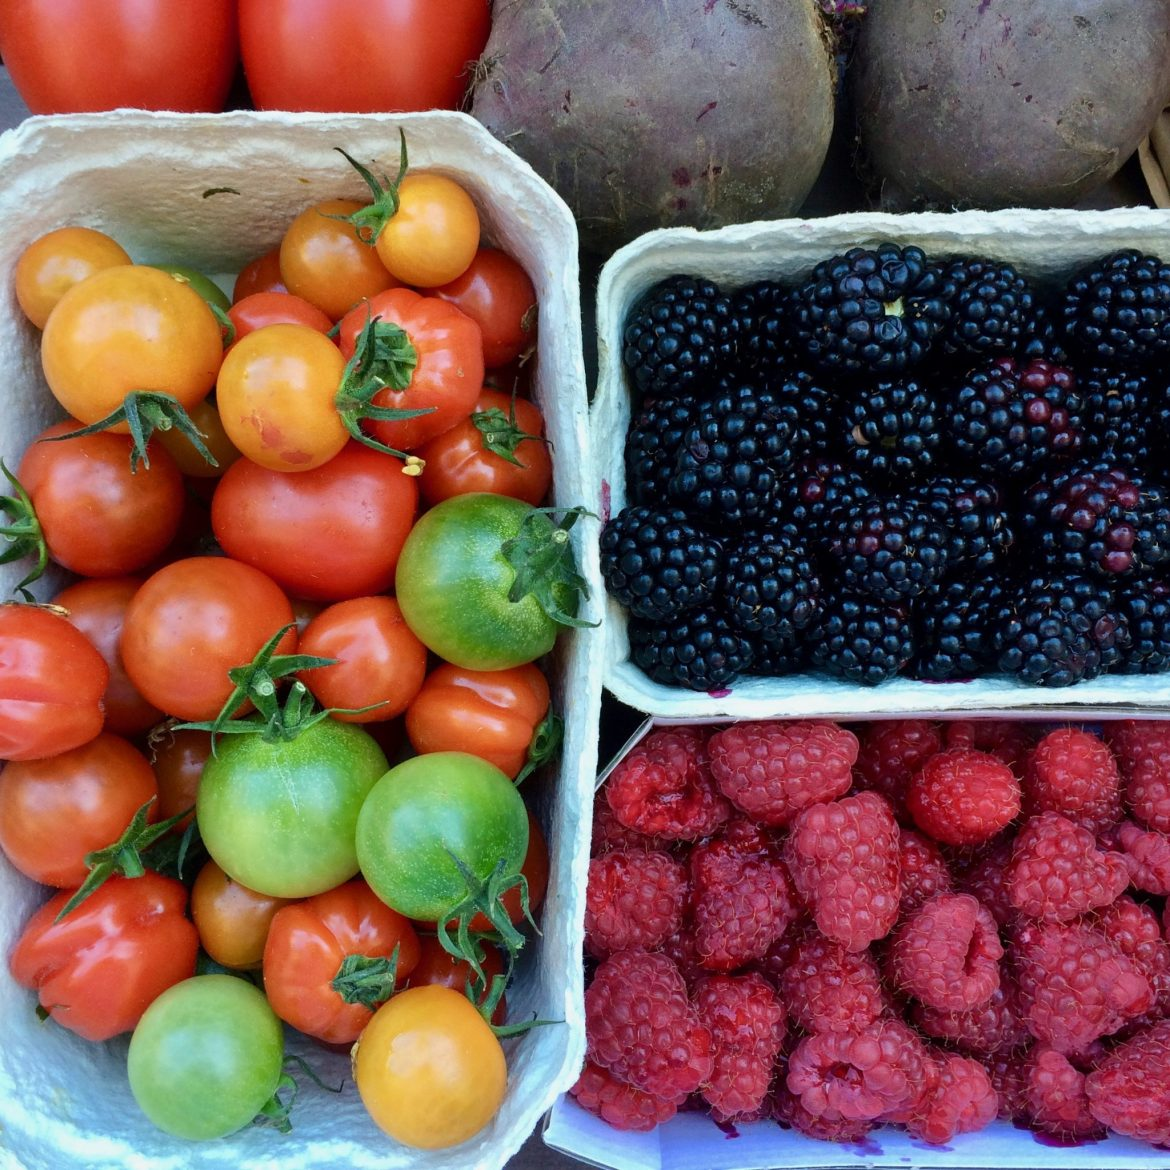 Flat lay of August fruit and vegetables: tomatoes, raspberries, blackberries and beetroot